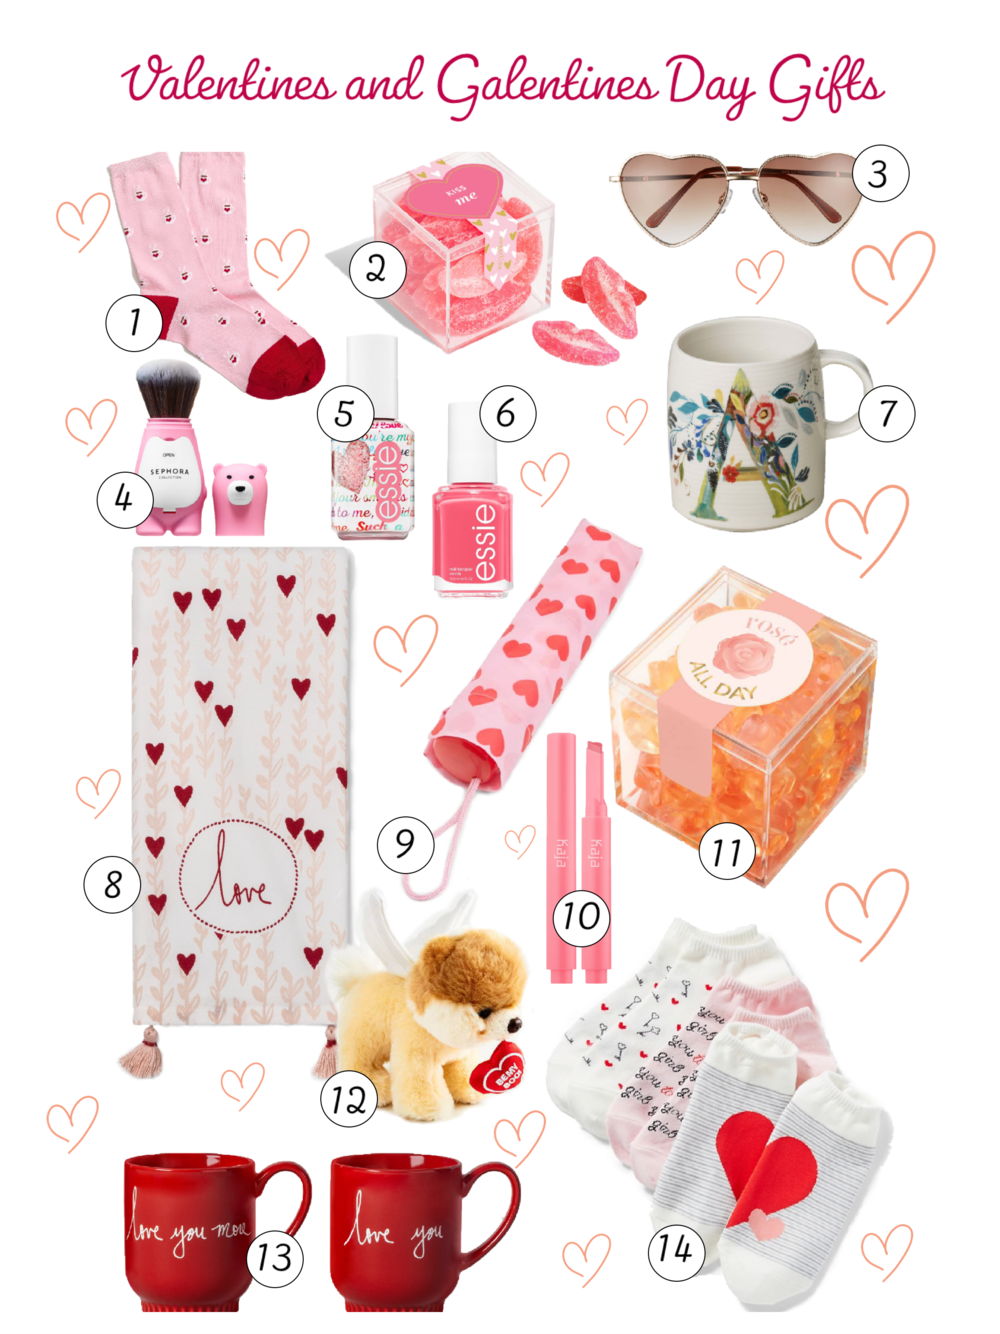 Valentines and Galentines Day Gifts